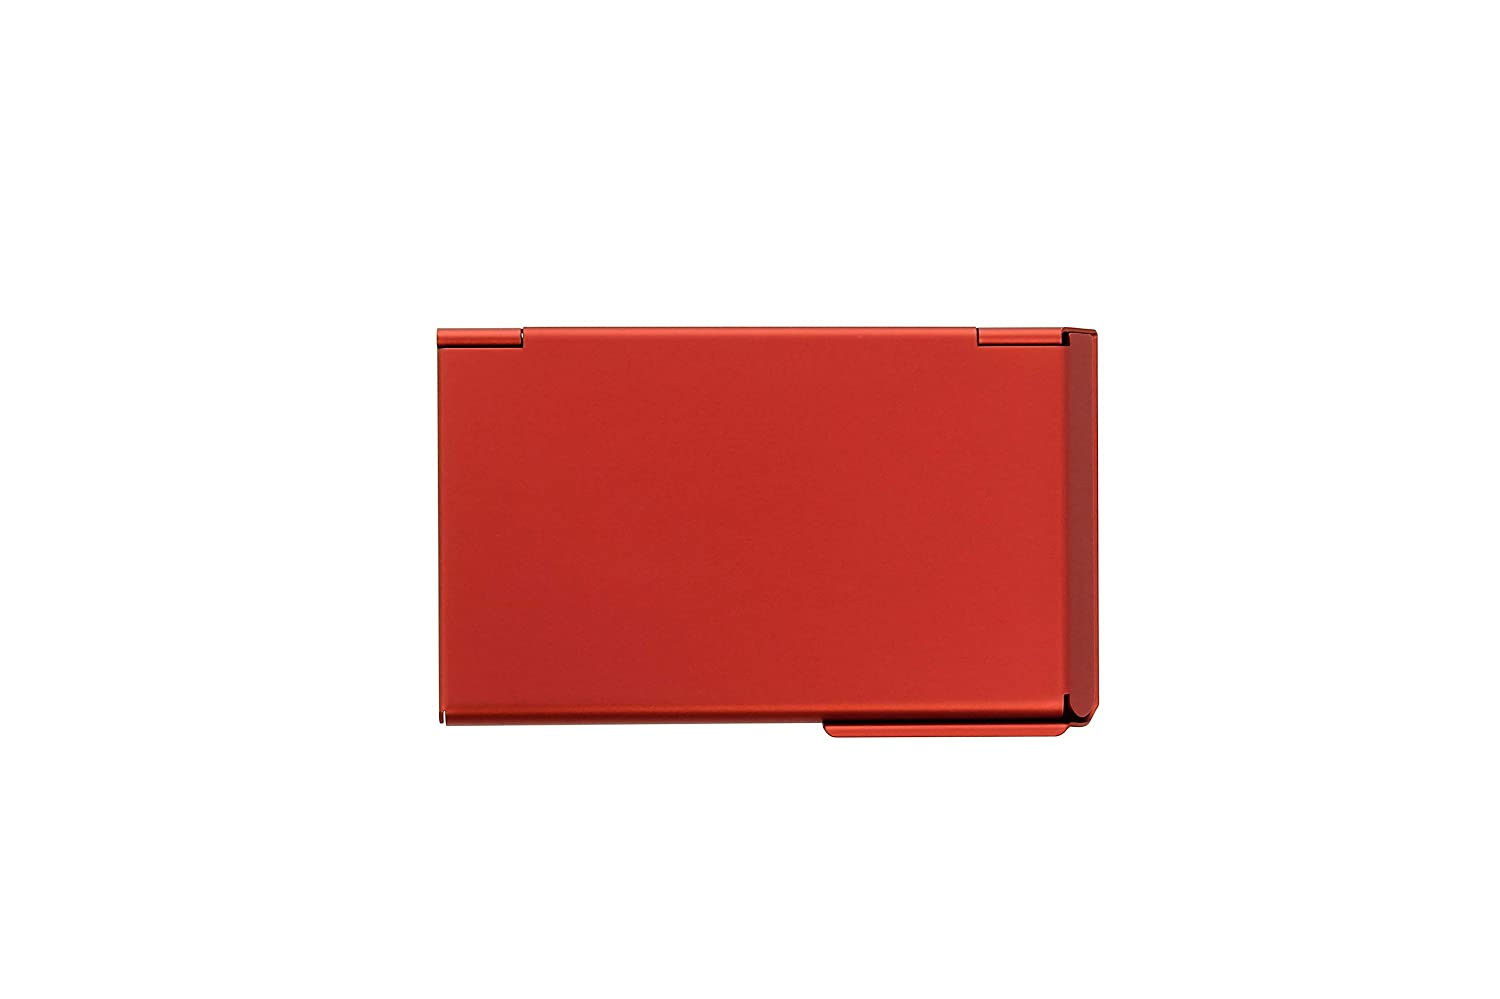 /Ögon OT-Red Business Card Hold One Touch Anodized Aluminium Red